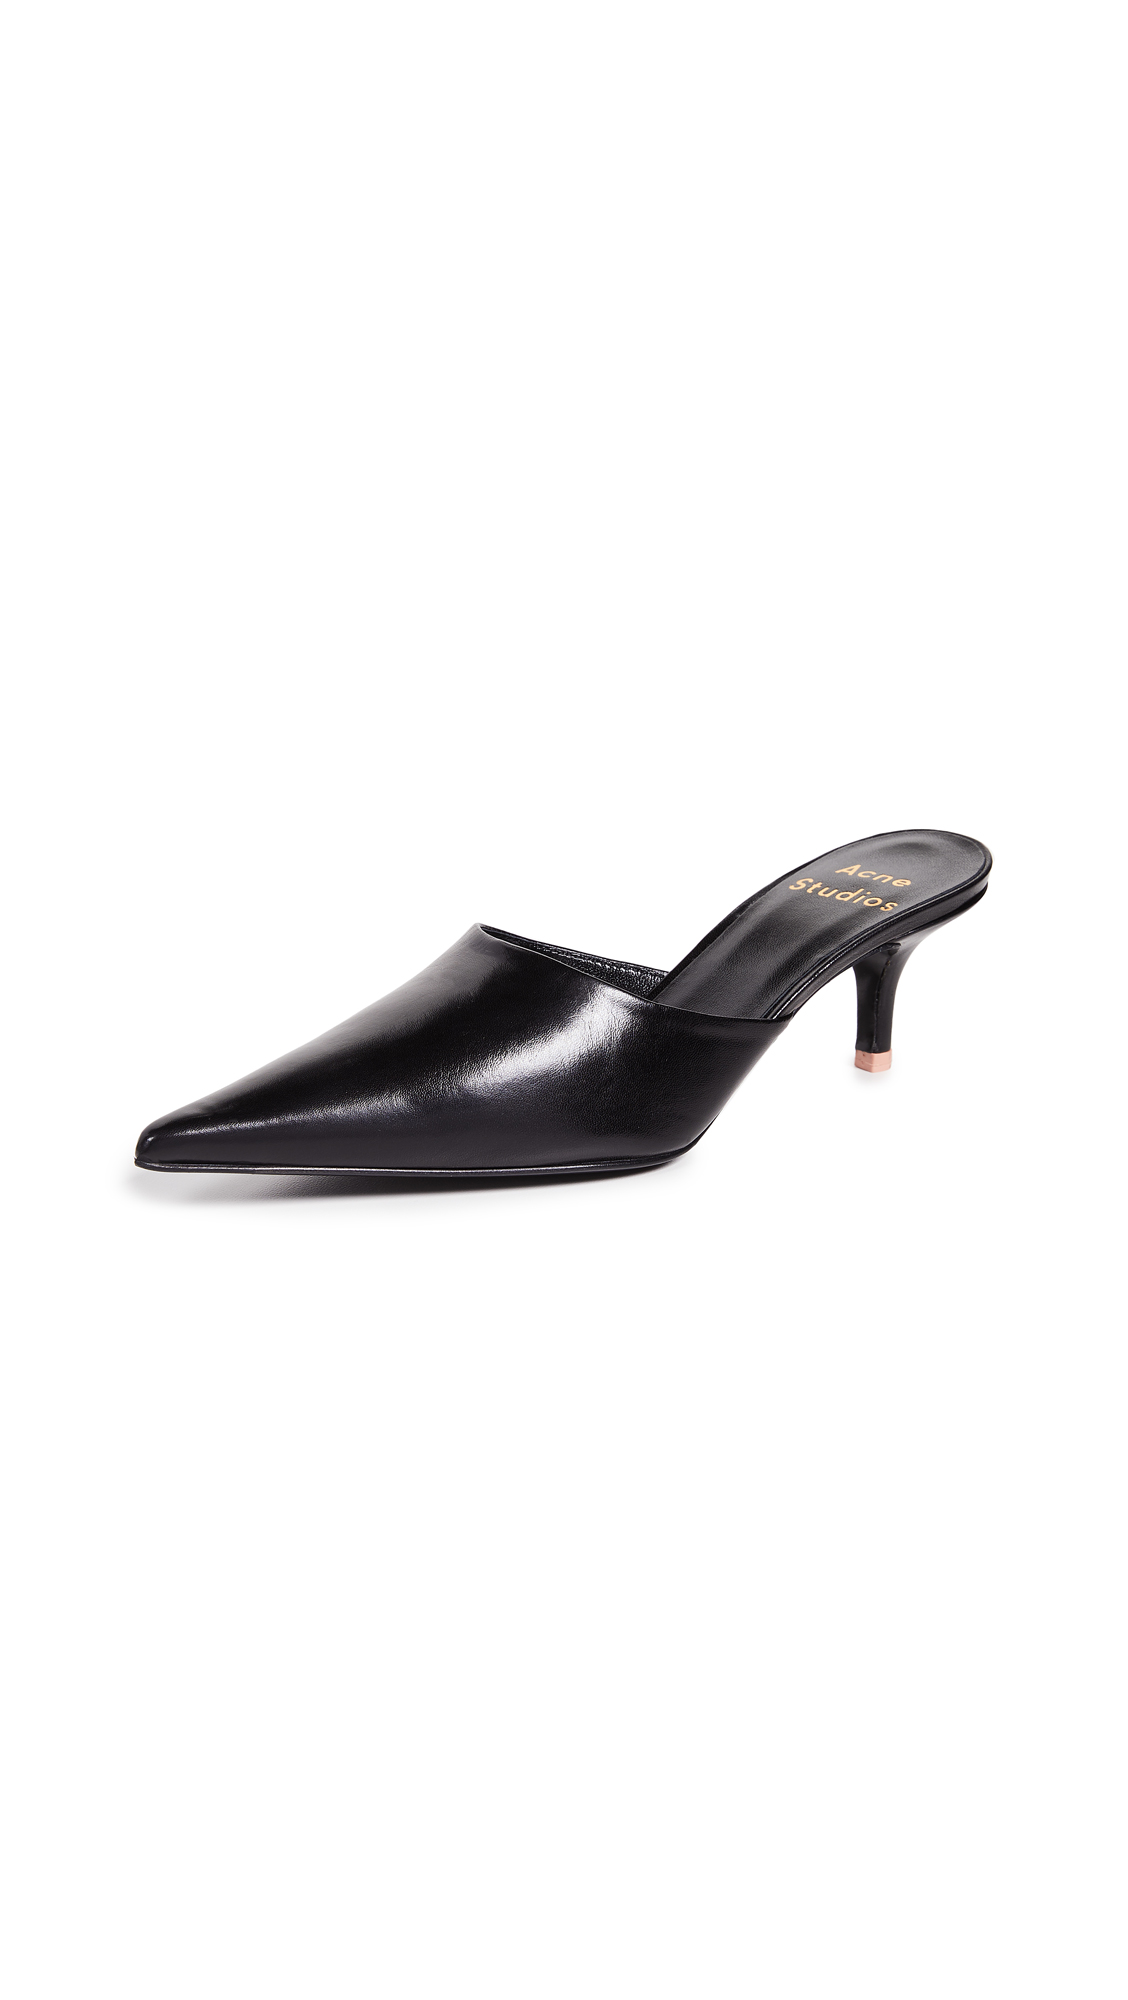 Acne Studios Mule Pumps In Black